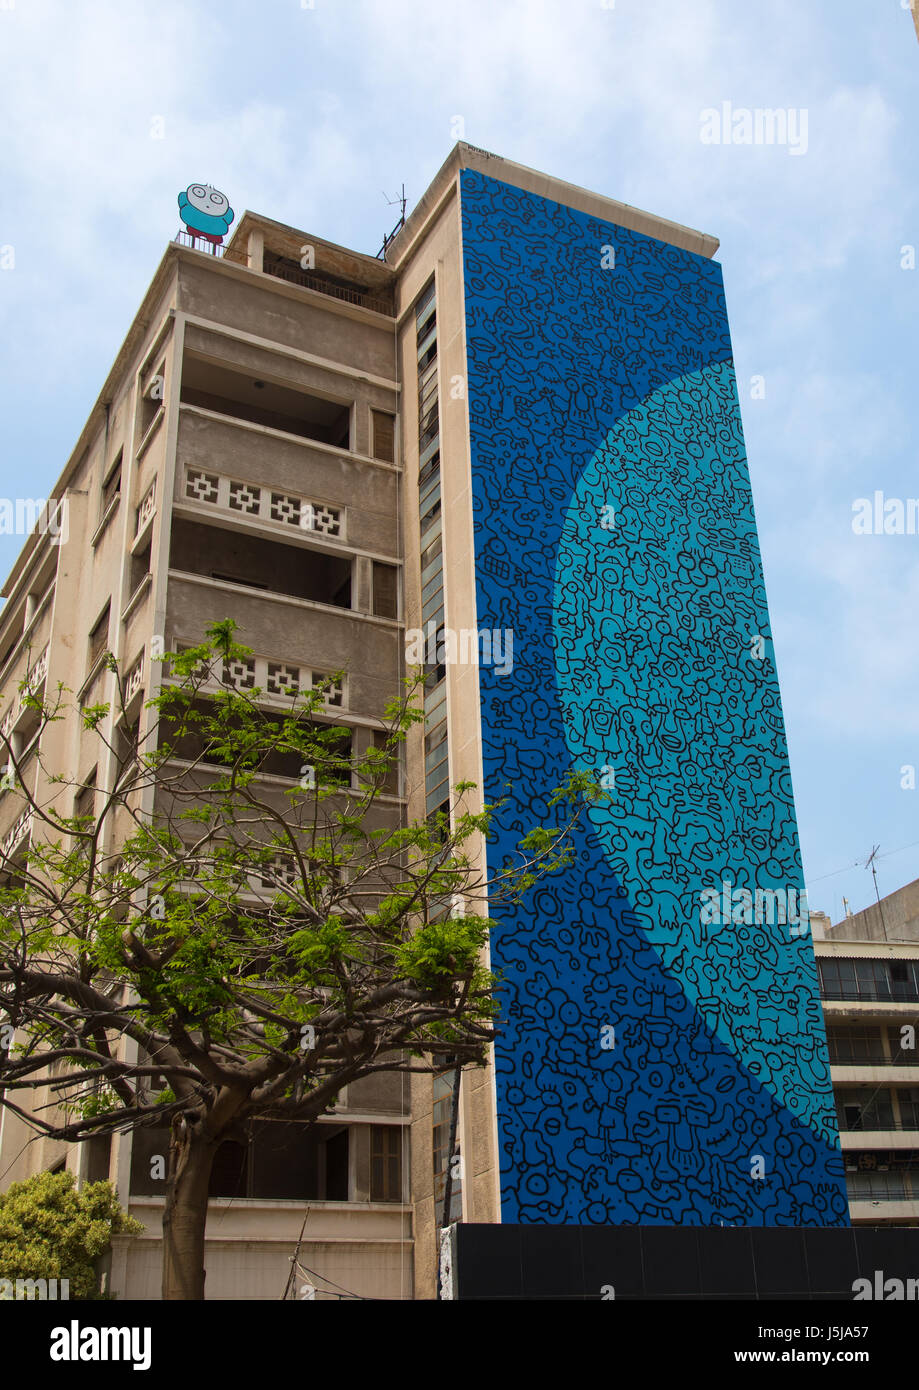 Giant fresco on a building, Beirut Governorate, Beirut, Lebanon - Stock-Bilder